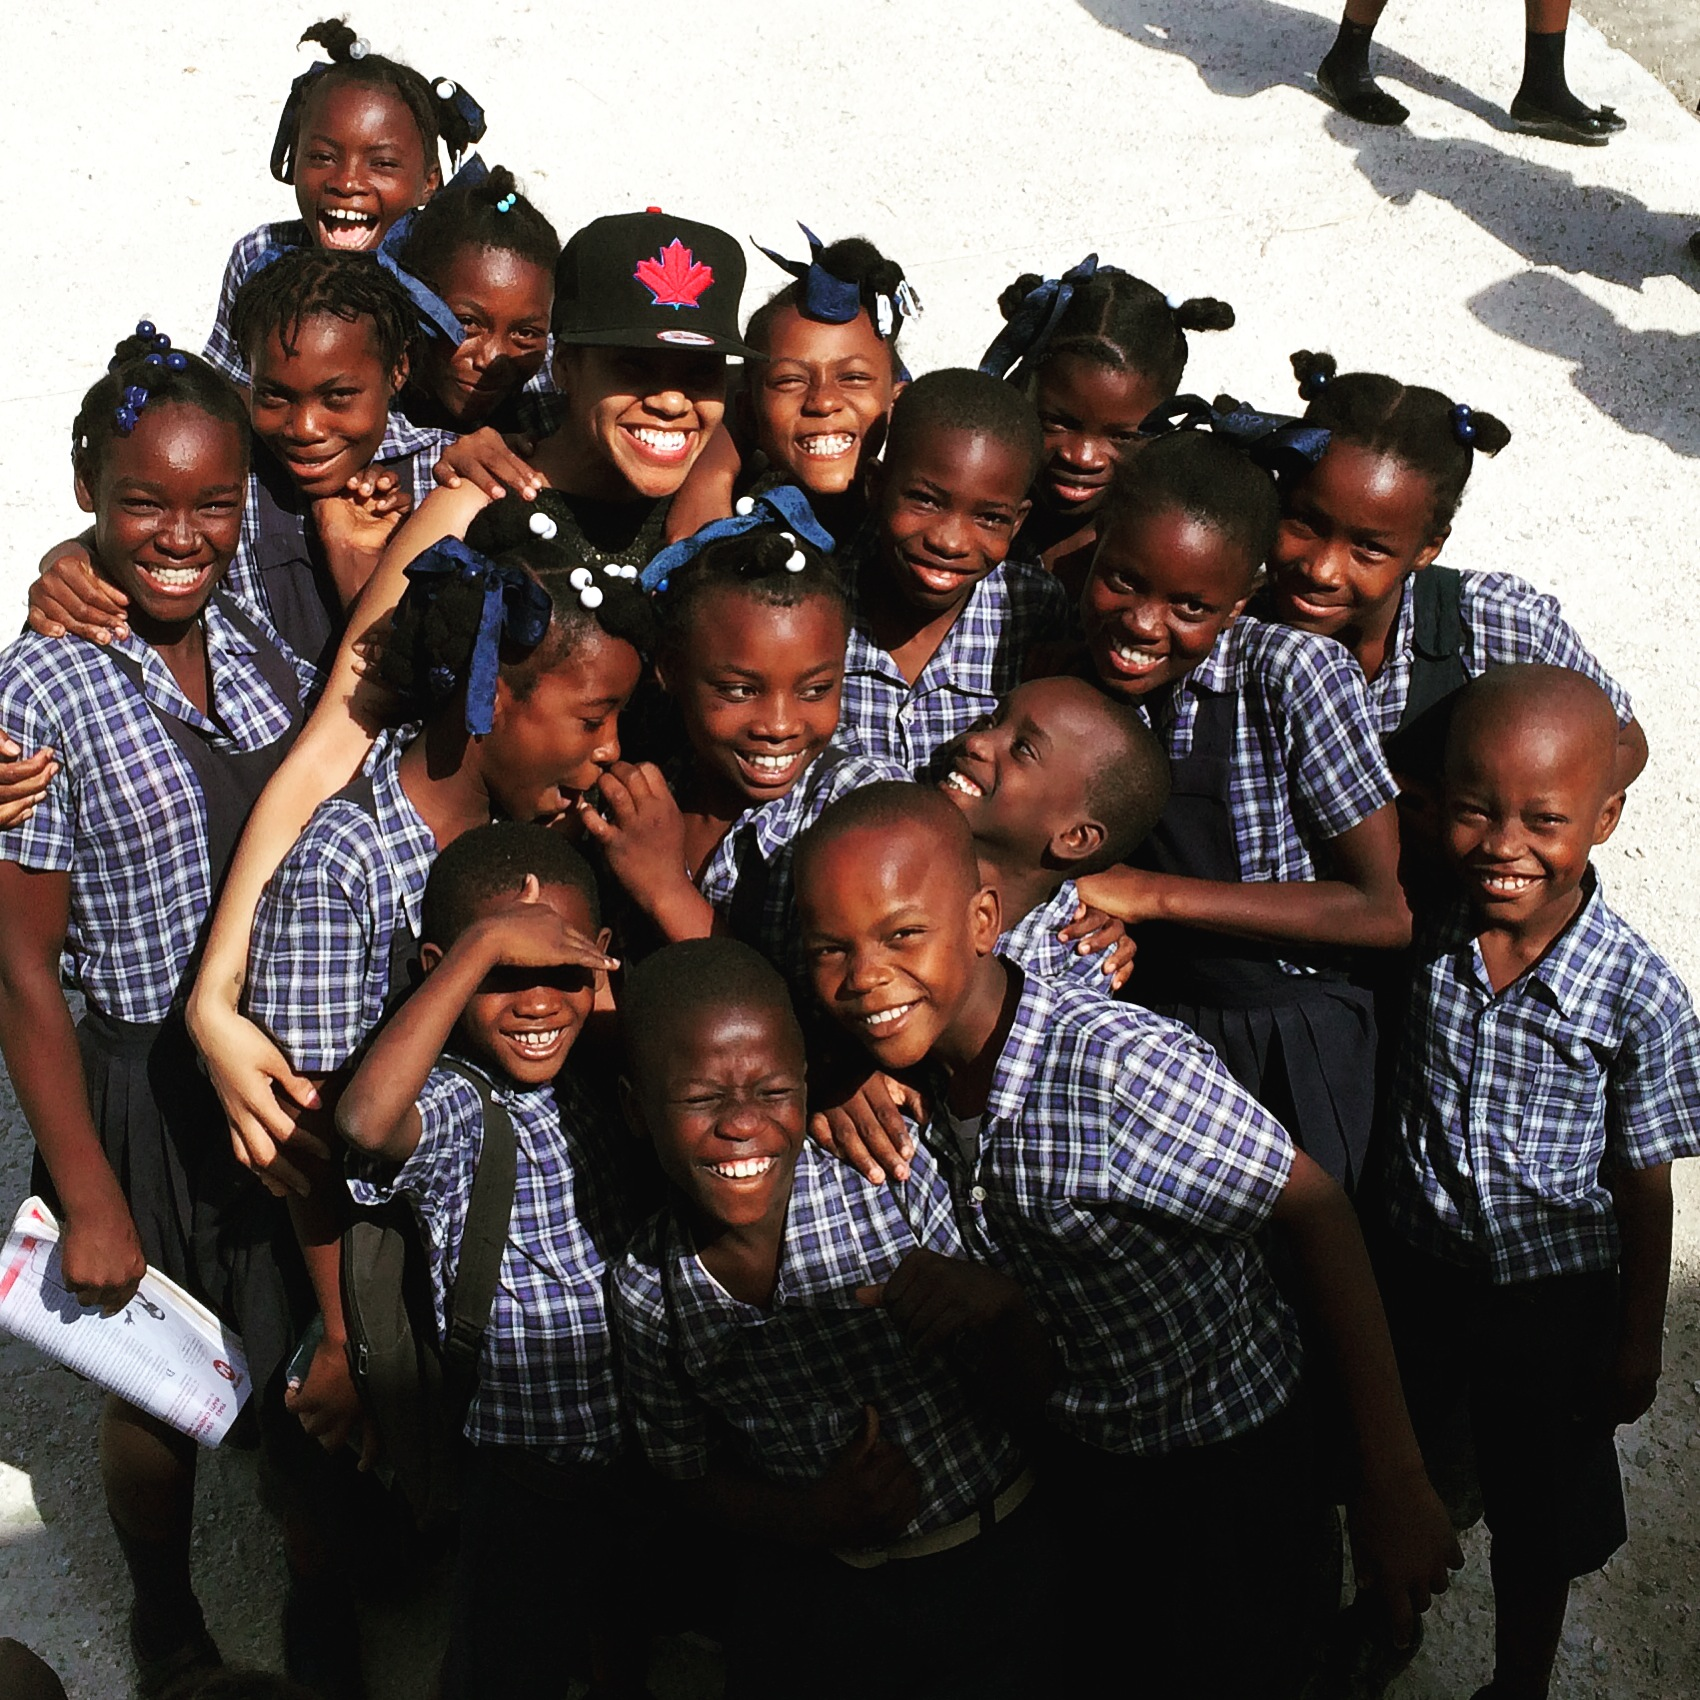 TWA, Third World Awareness, Port au Prince, Haiti, Haitians, students, non-profit, charity, volunteers, education, school building